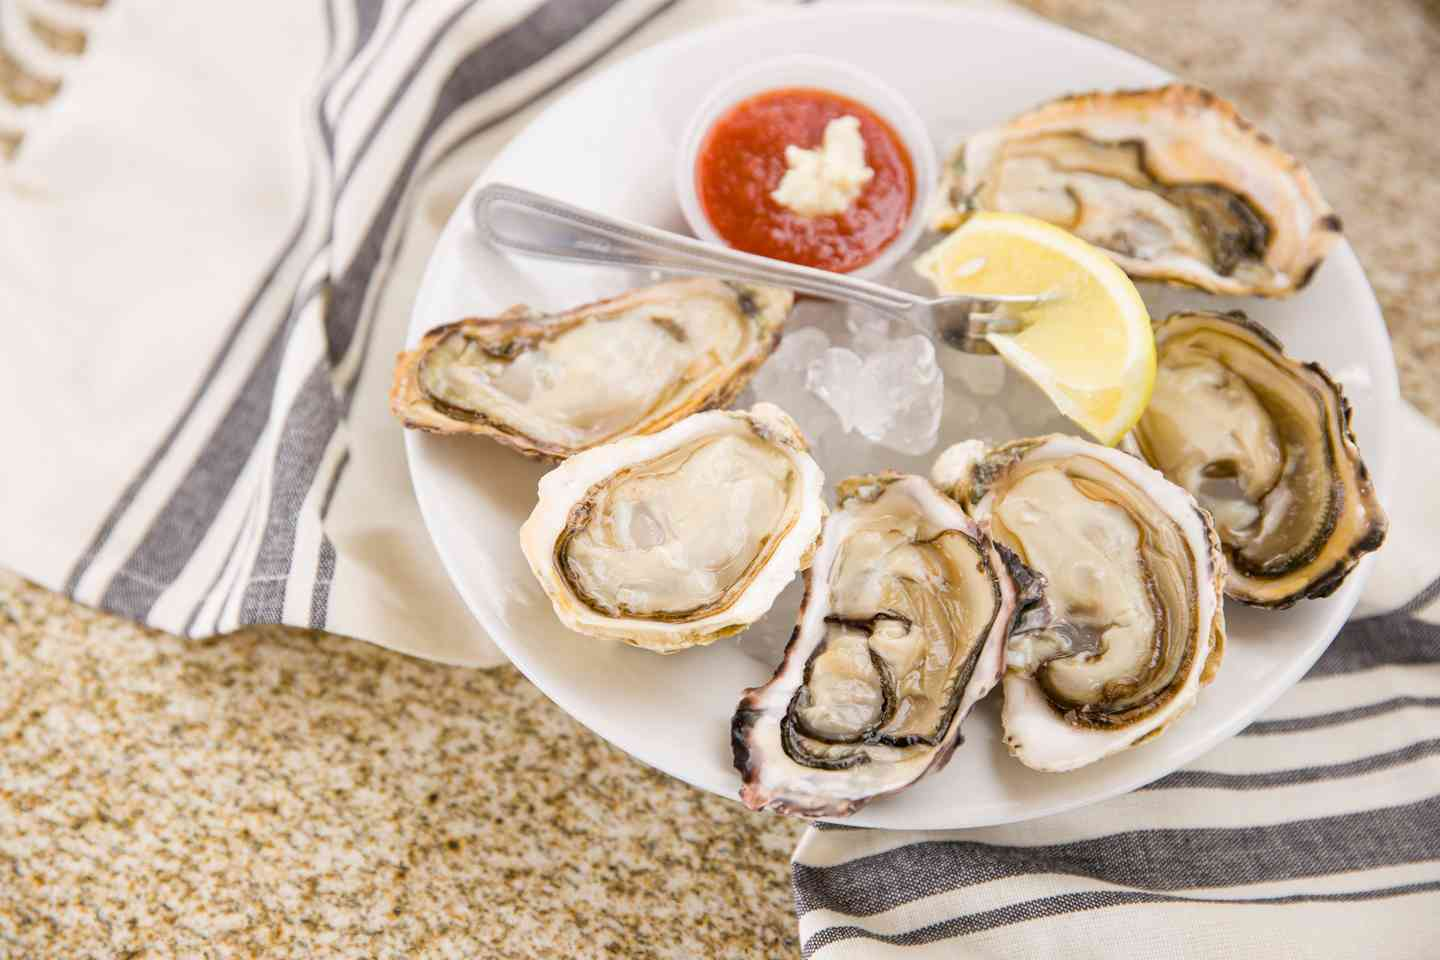 Chilled Oysters Half Shell